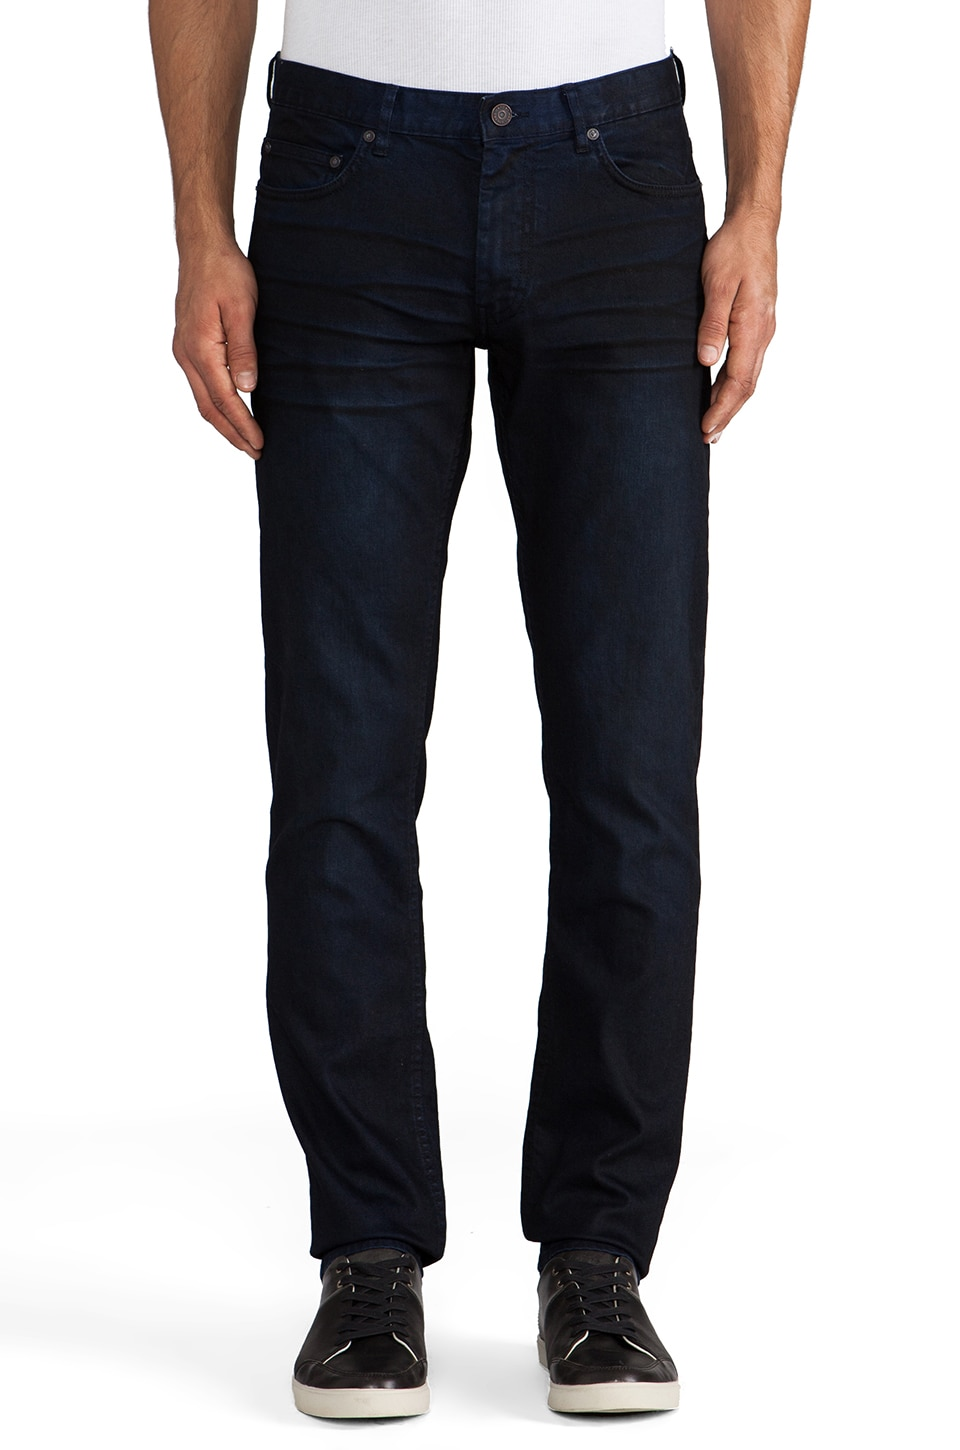 Marc by Marc Jacobs Coated Denim in Dark Indigo